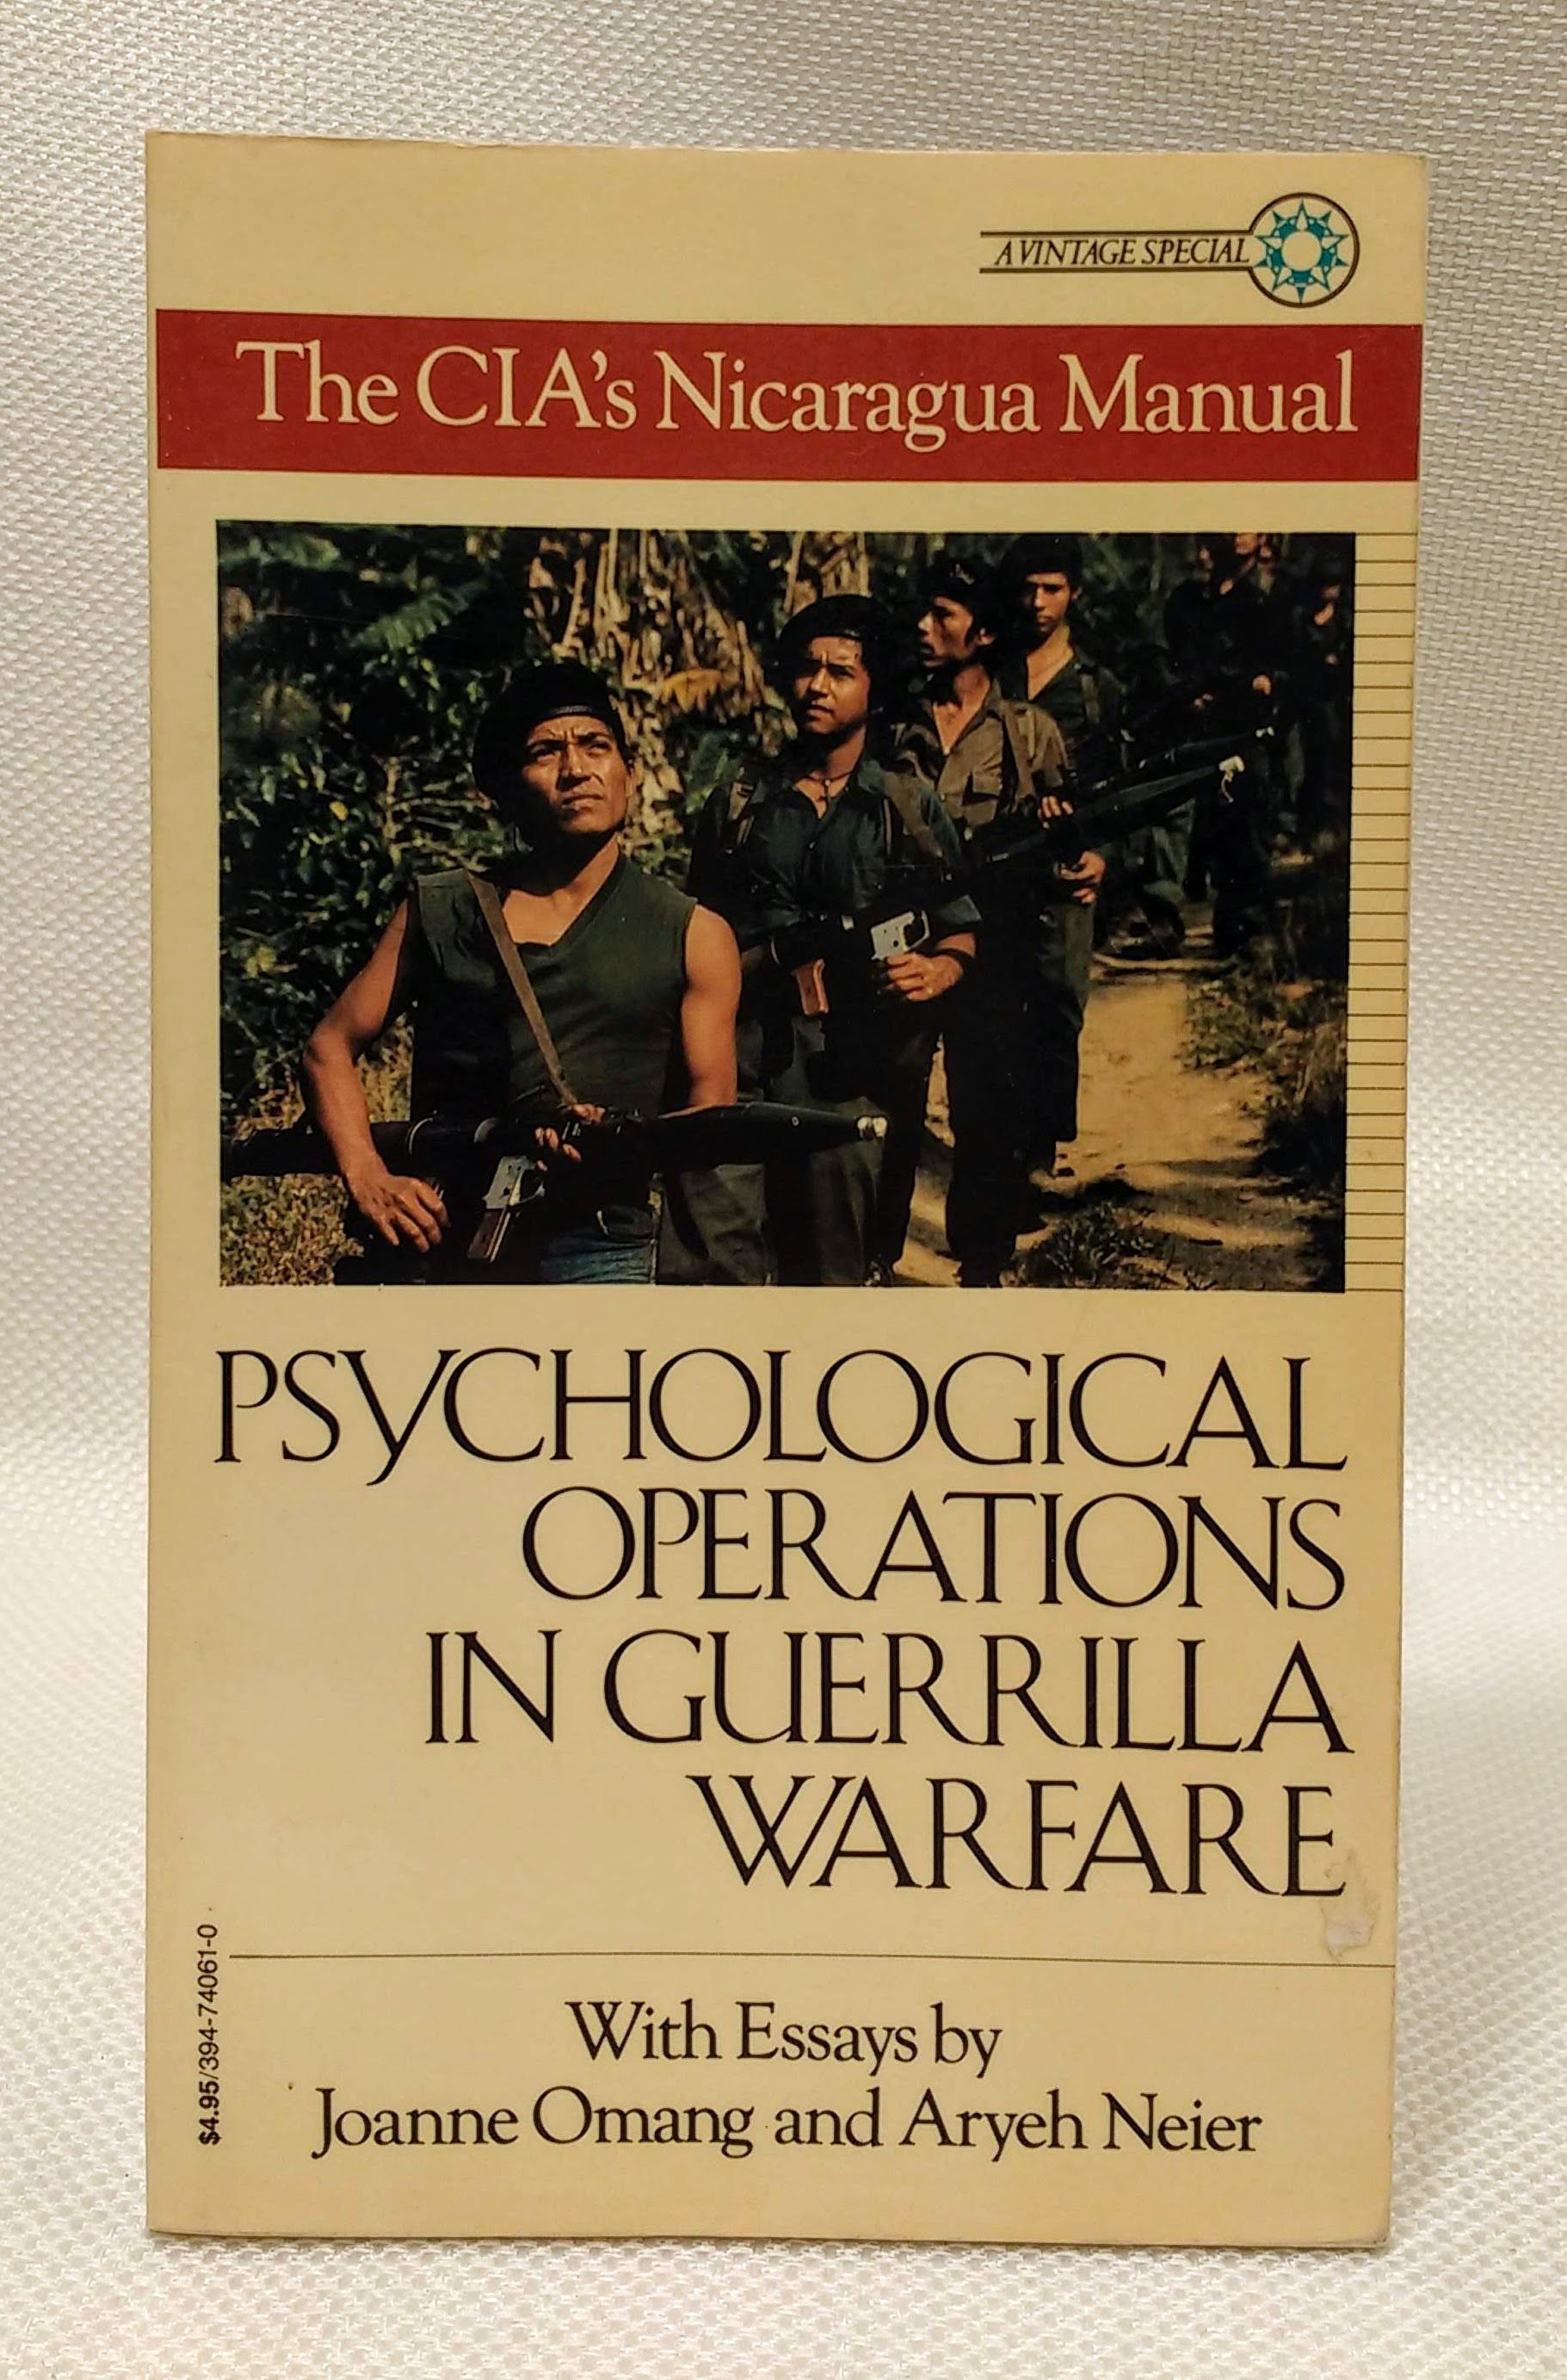 Psychological Operations in Guerrilla Warfare: The CIA's Nicaragua Manual, Tayacan; Joanne Omang; Aryeh Neier